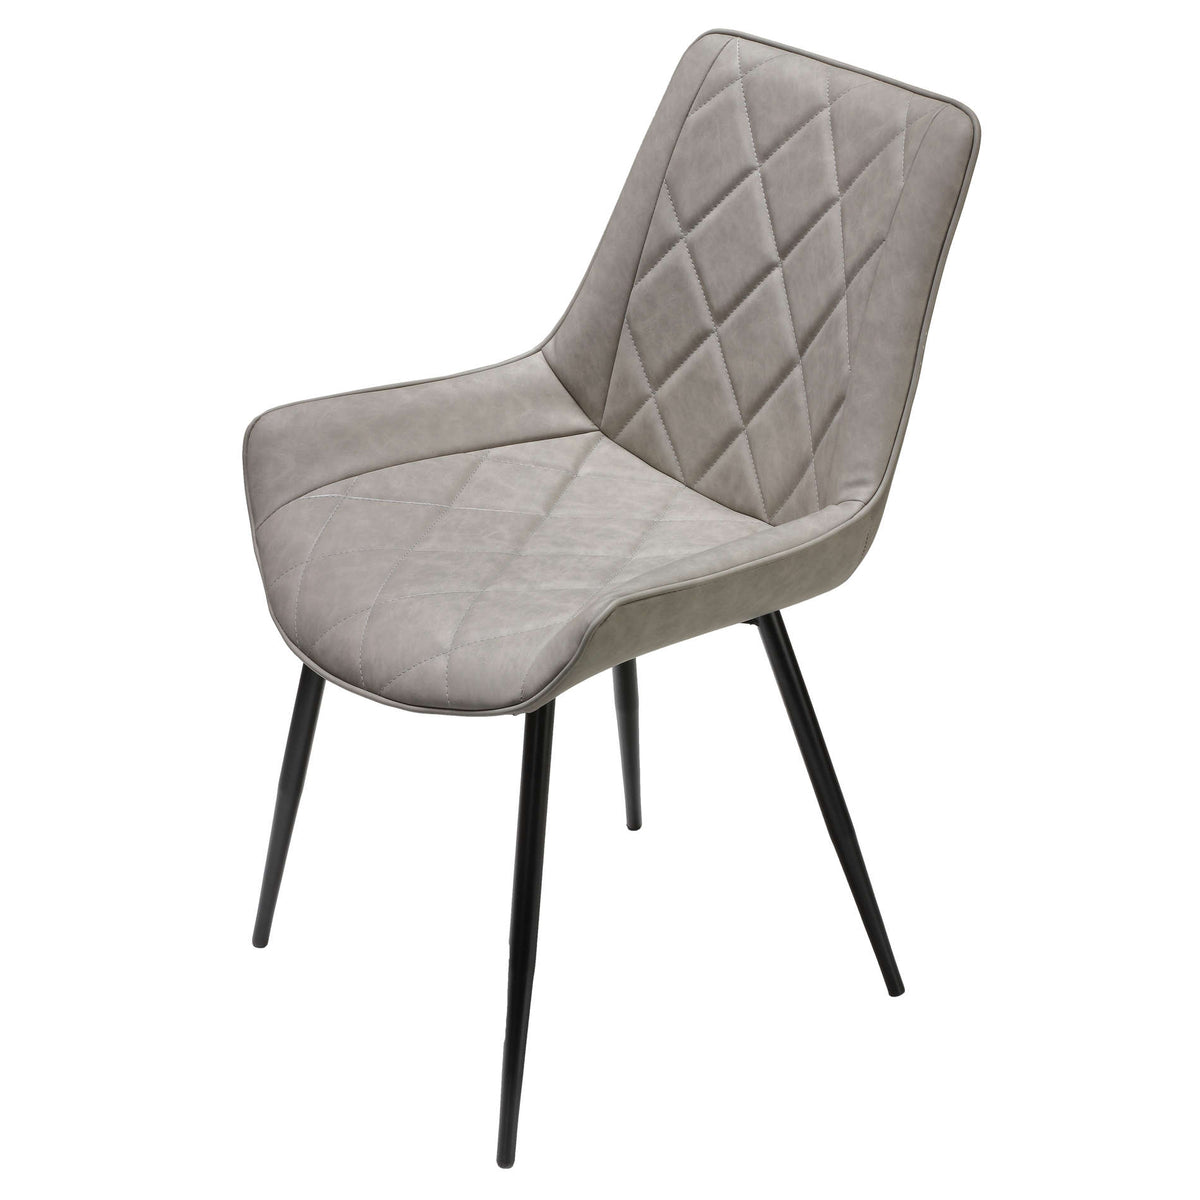 Cortesi Home Ellie Dining Chairs in Gray faux Leather, Set of 2